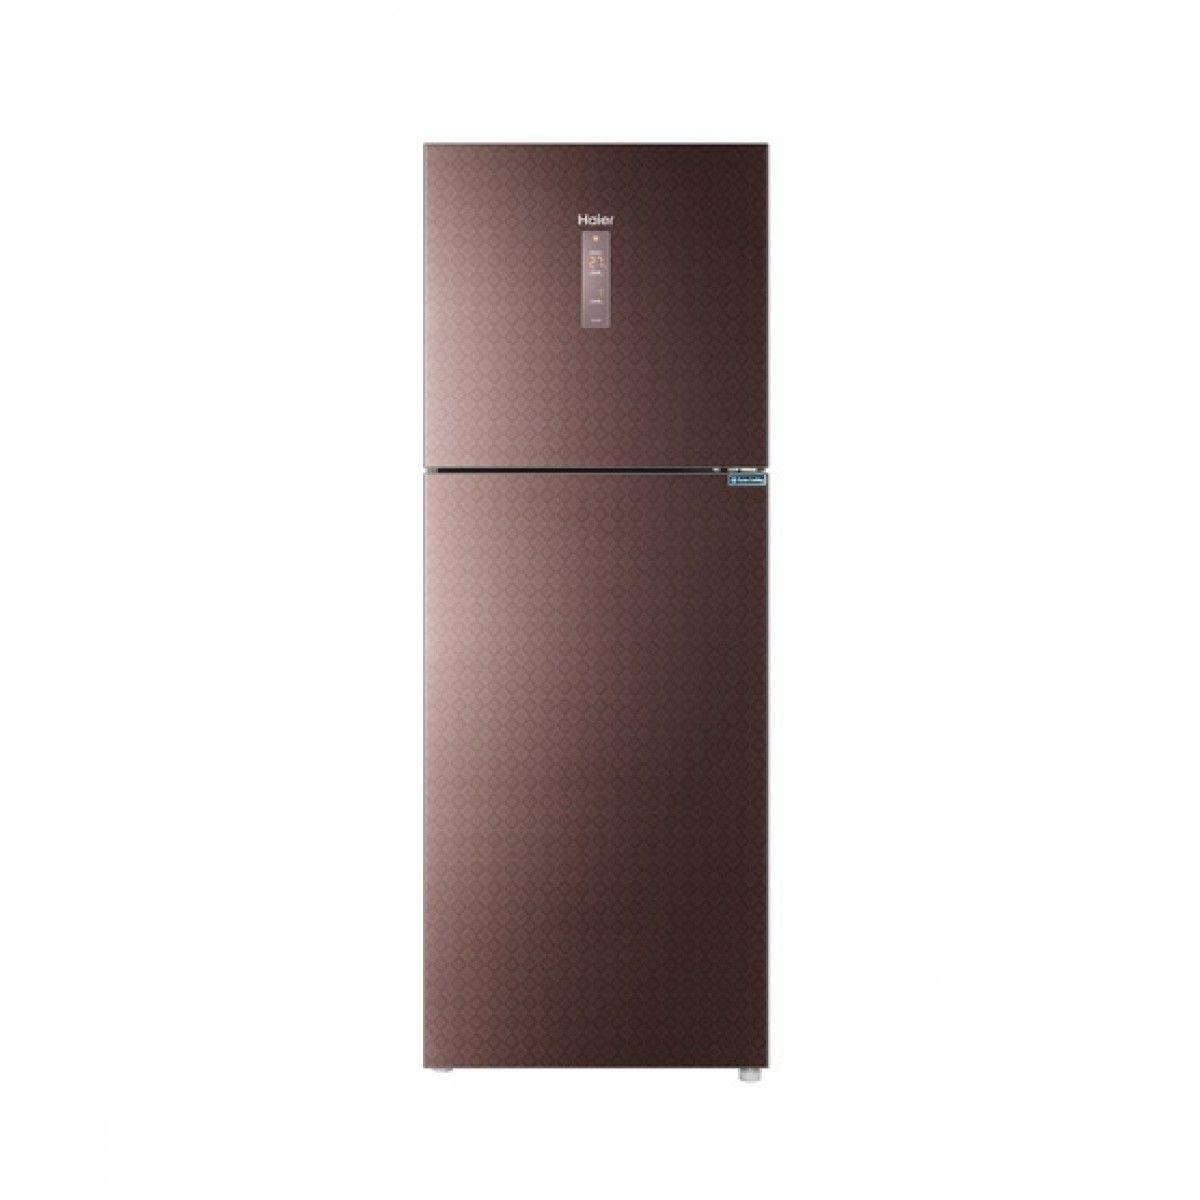 Haier HRF-336TDC 11 Cu Ft Turbo Cooling Freezer-on-Top Refrigerator